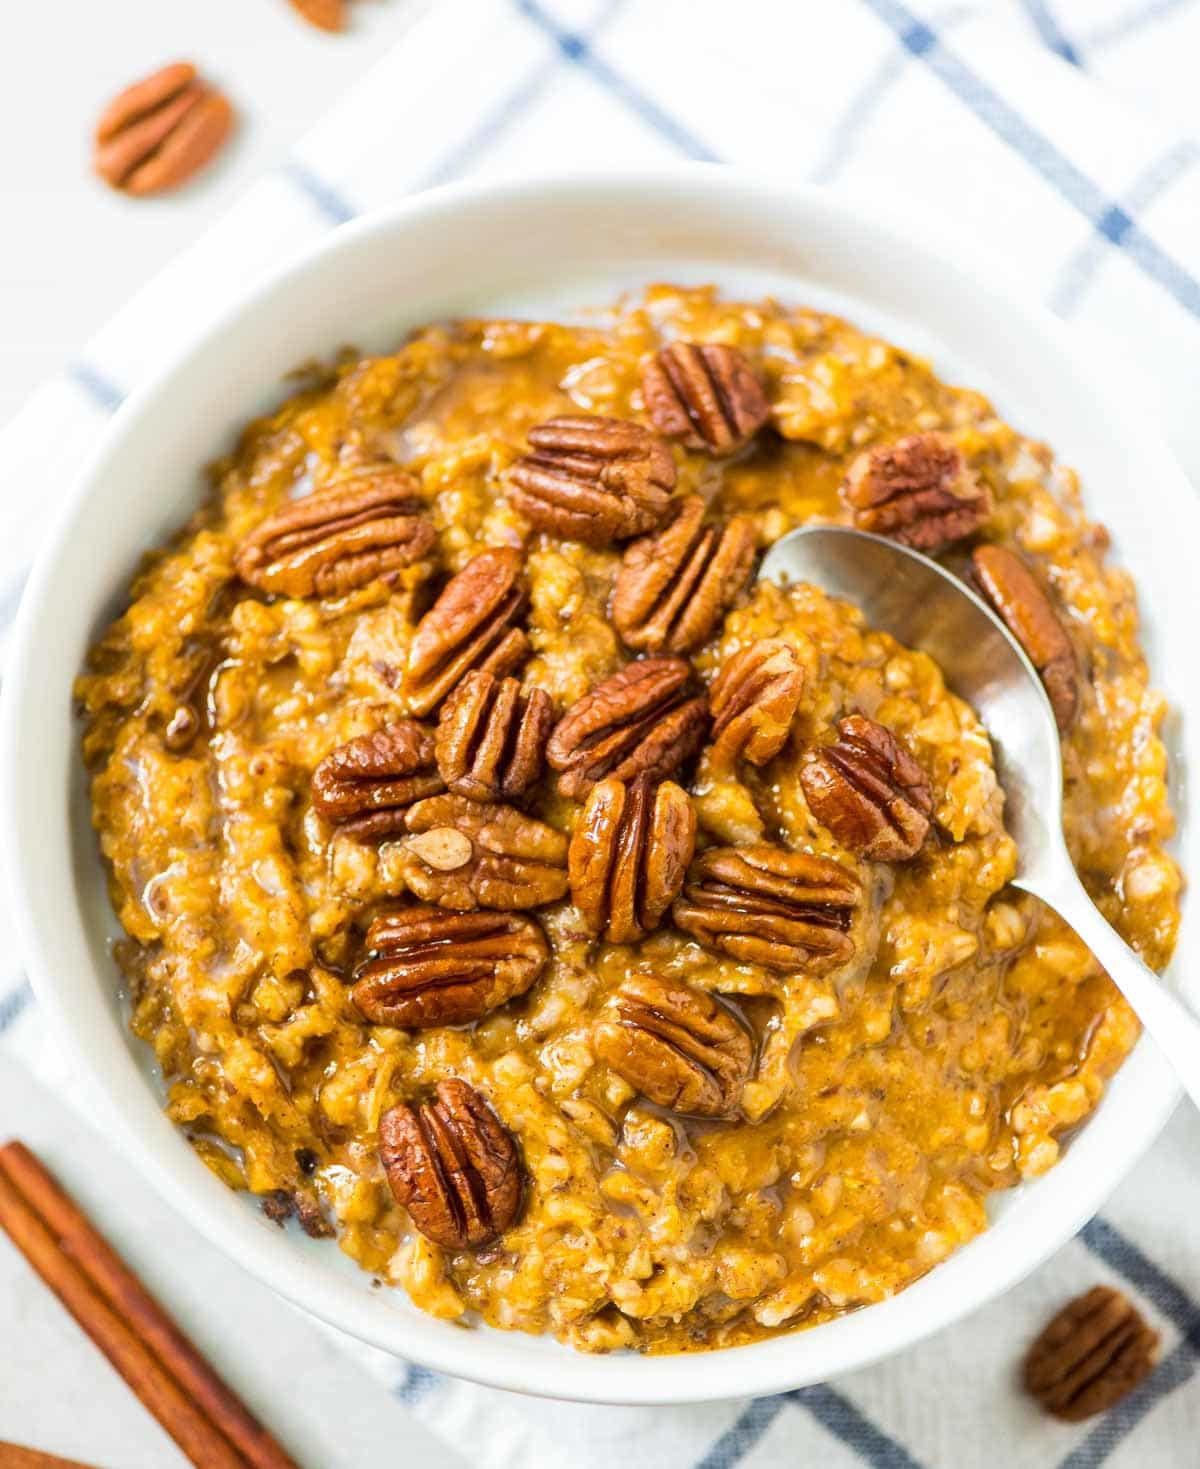 Pumpkin Overnight Oats. EASY, healthy recipe that's ready to go as soon as you wake up! Made with pumpkin, steel cut oats, and lots of warm spices. @wellplated